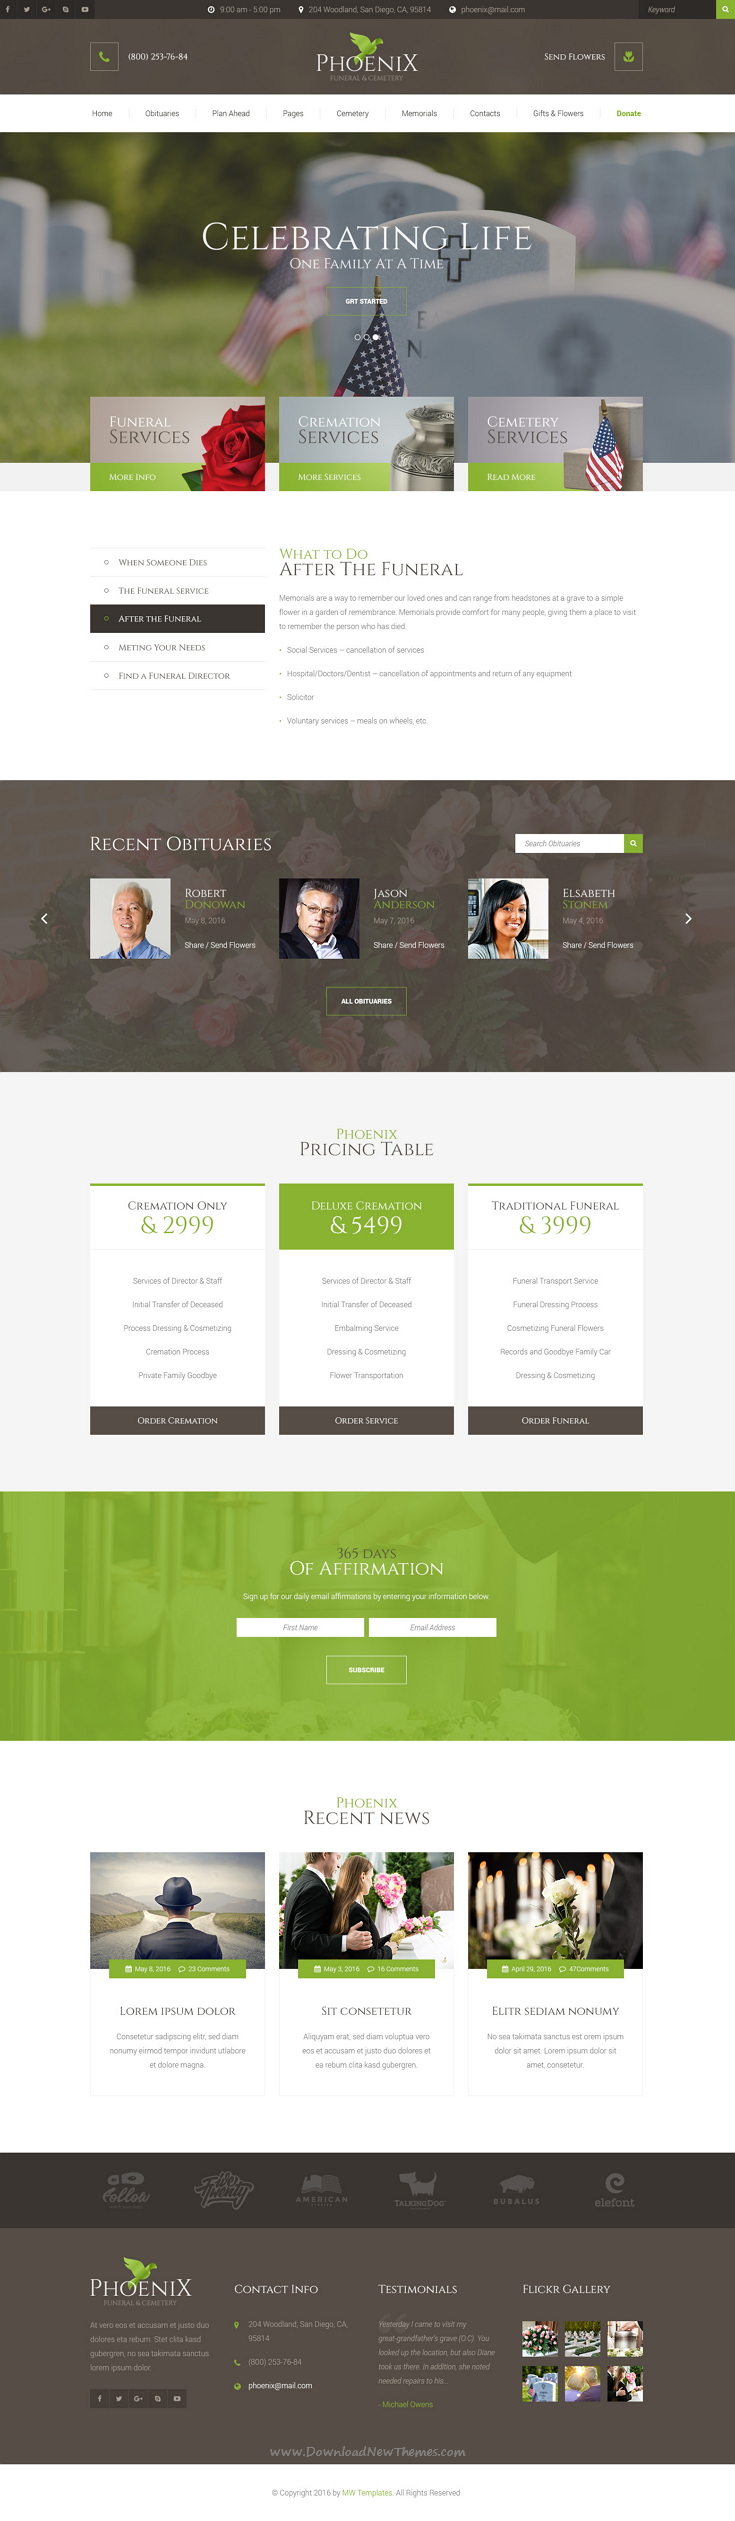 Phoenix - Funeral Service, Funeral Home & Cemetery PSD Template ...